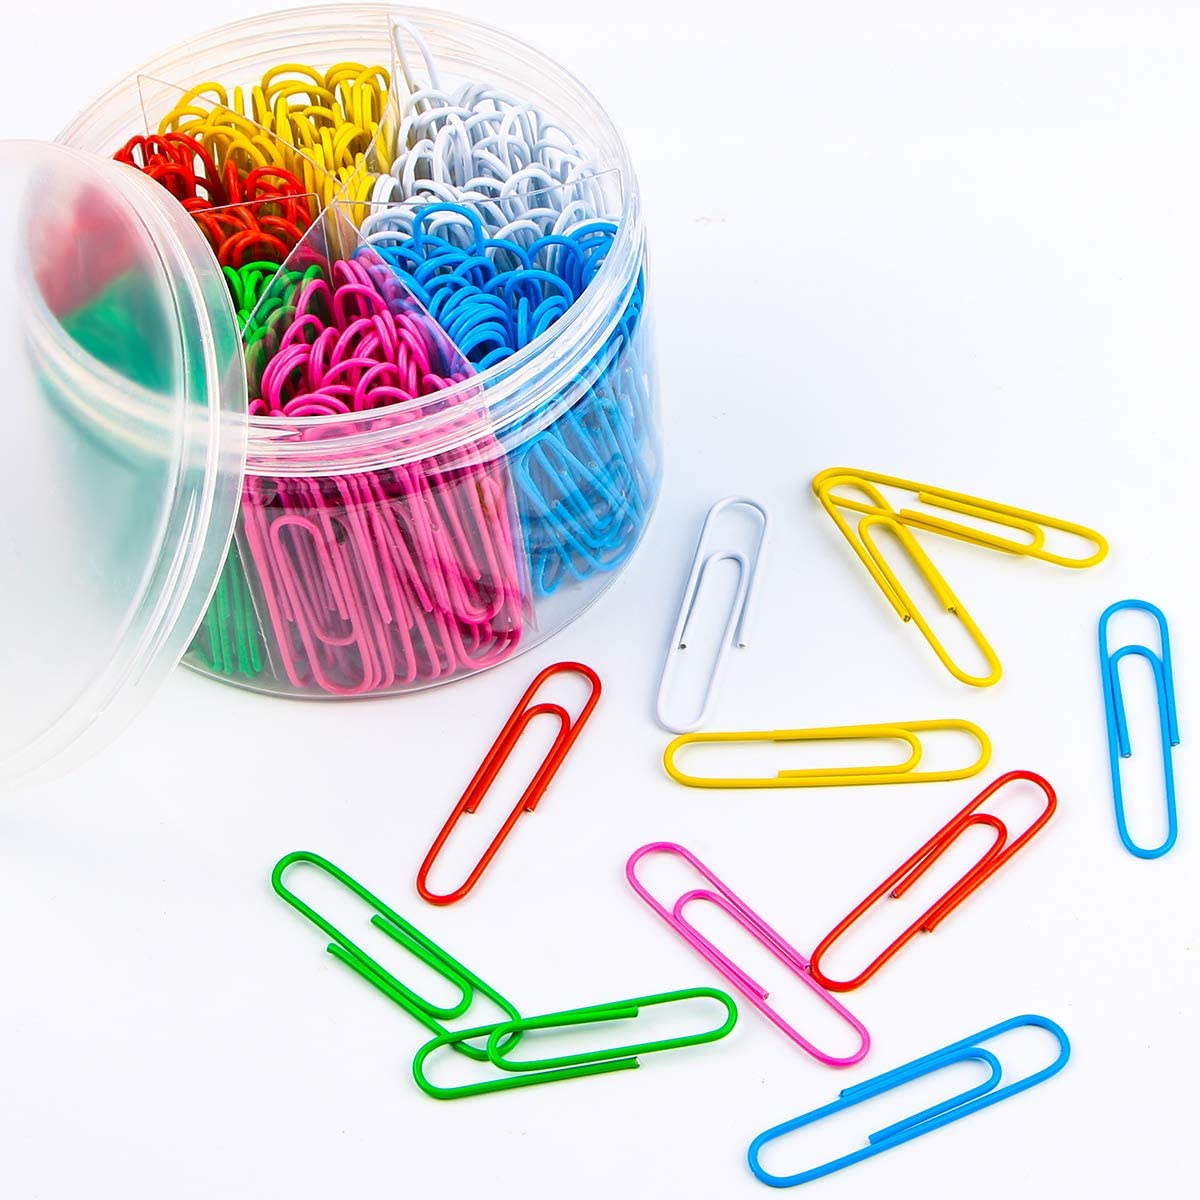 Paper Clips, 300 Pieces Colorful Paperclips 2 Inch Office Clips for School Personal Document Organizing and Classifying Professional Work (Jumbo Size)